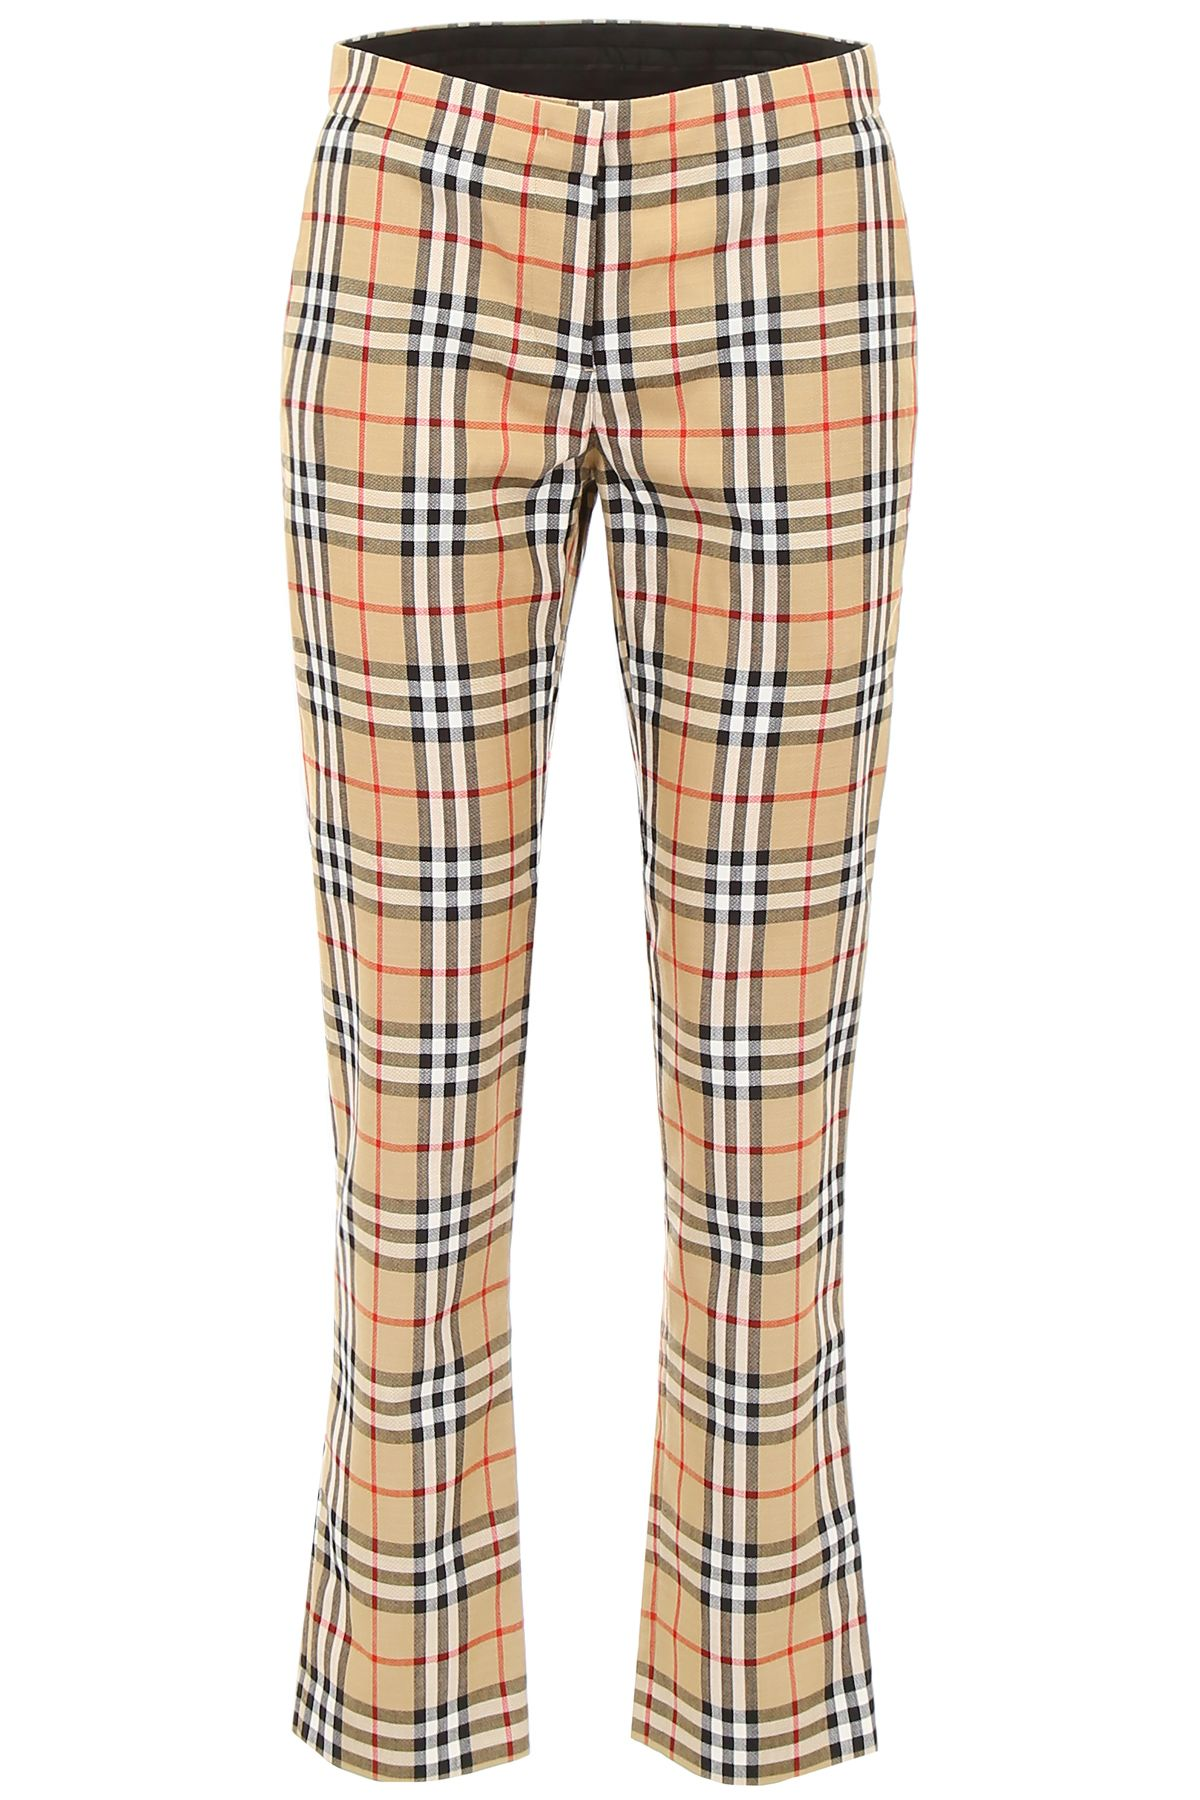 Check Hanover Trousers in Antique Yellow Chk